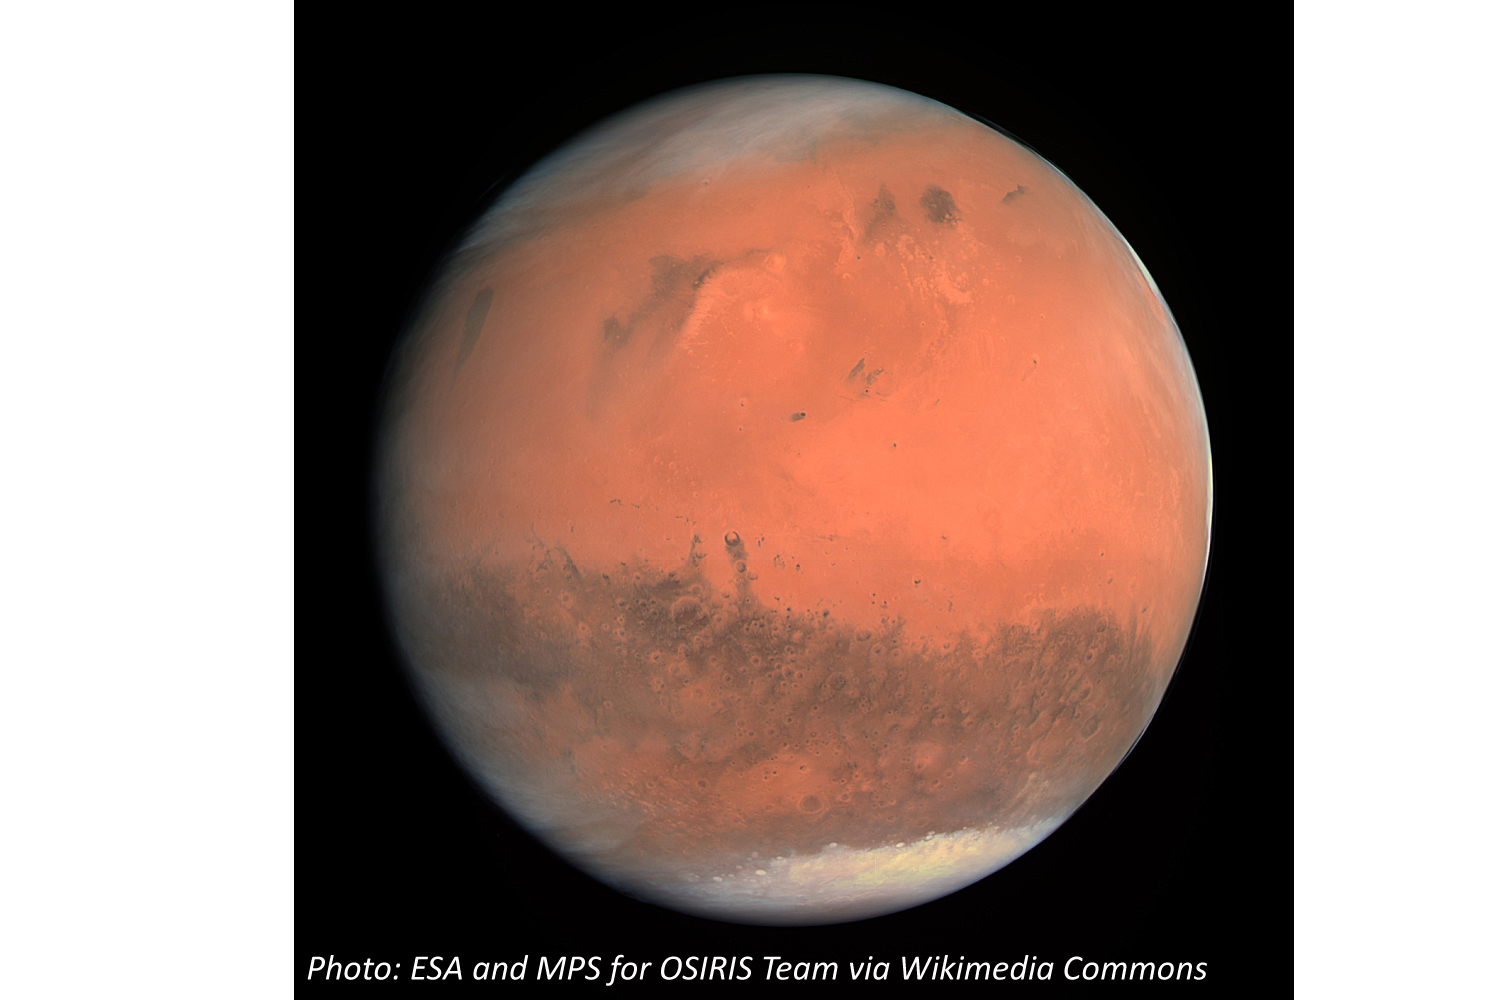 A Faster Trip to Mars